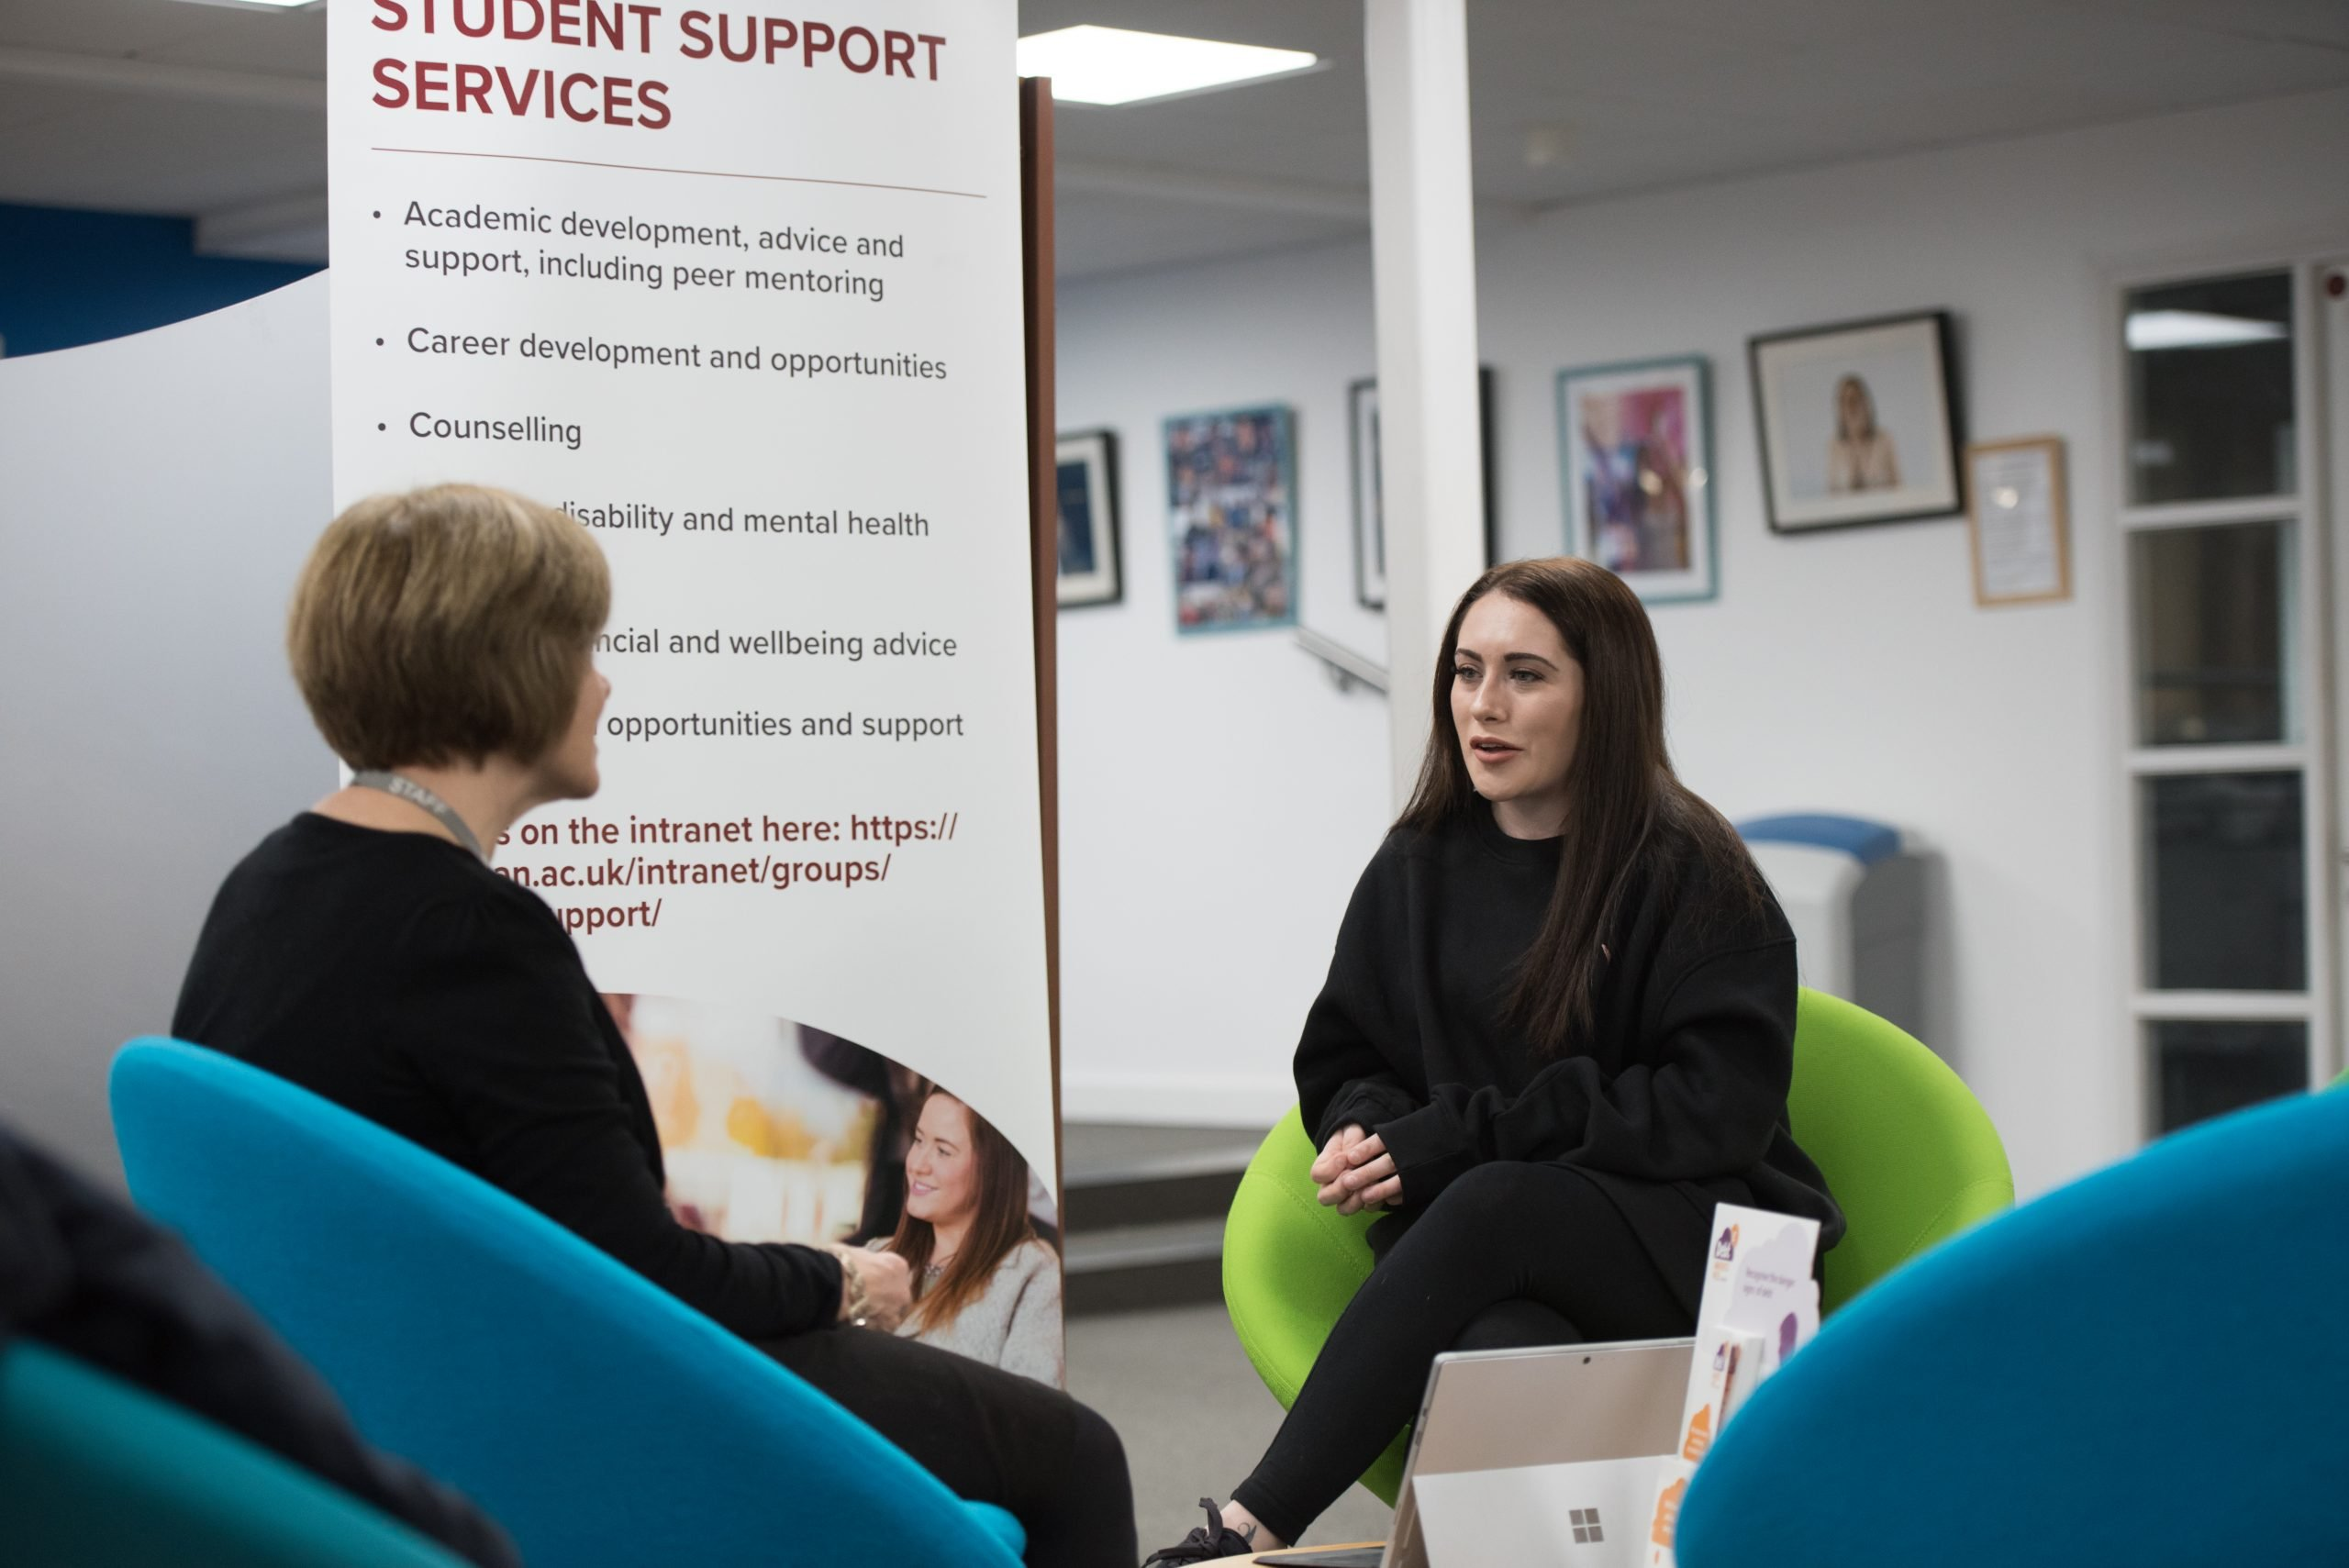 Staff and student sitting and talking by Student Support Services banner